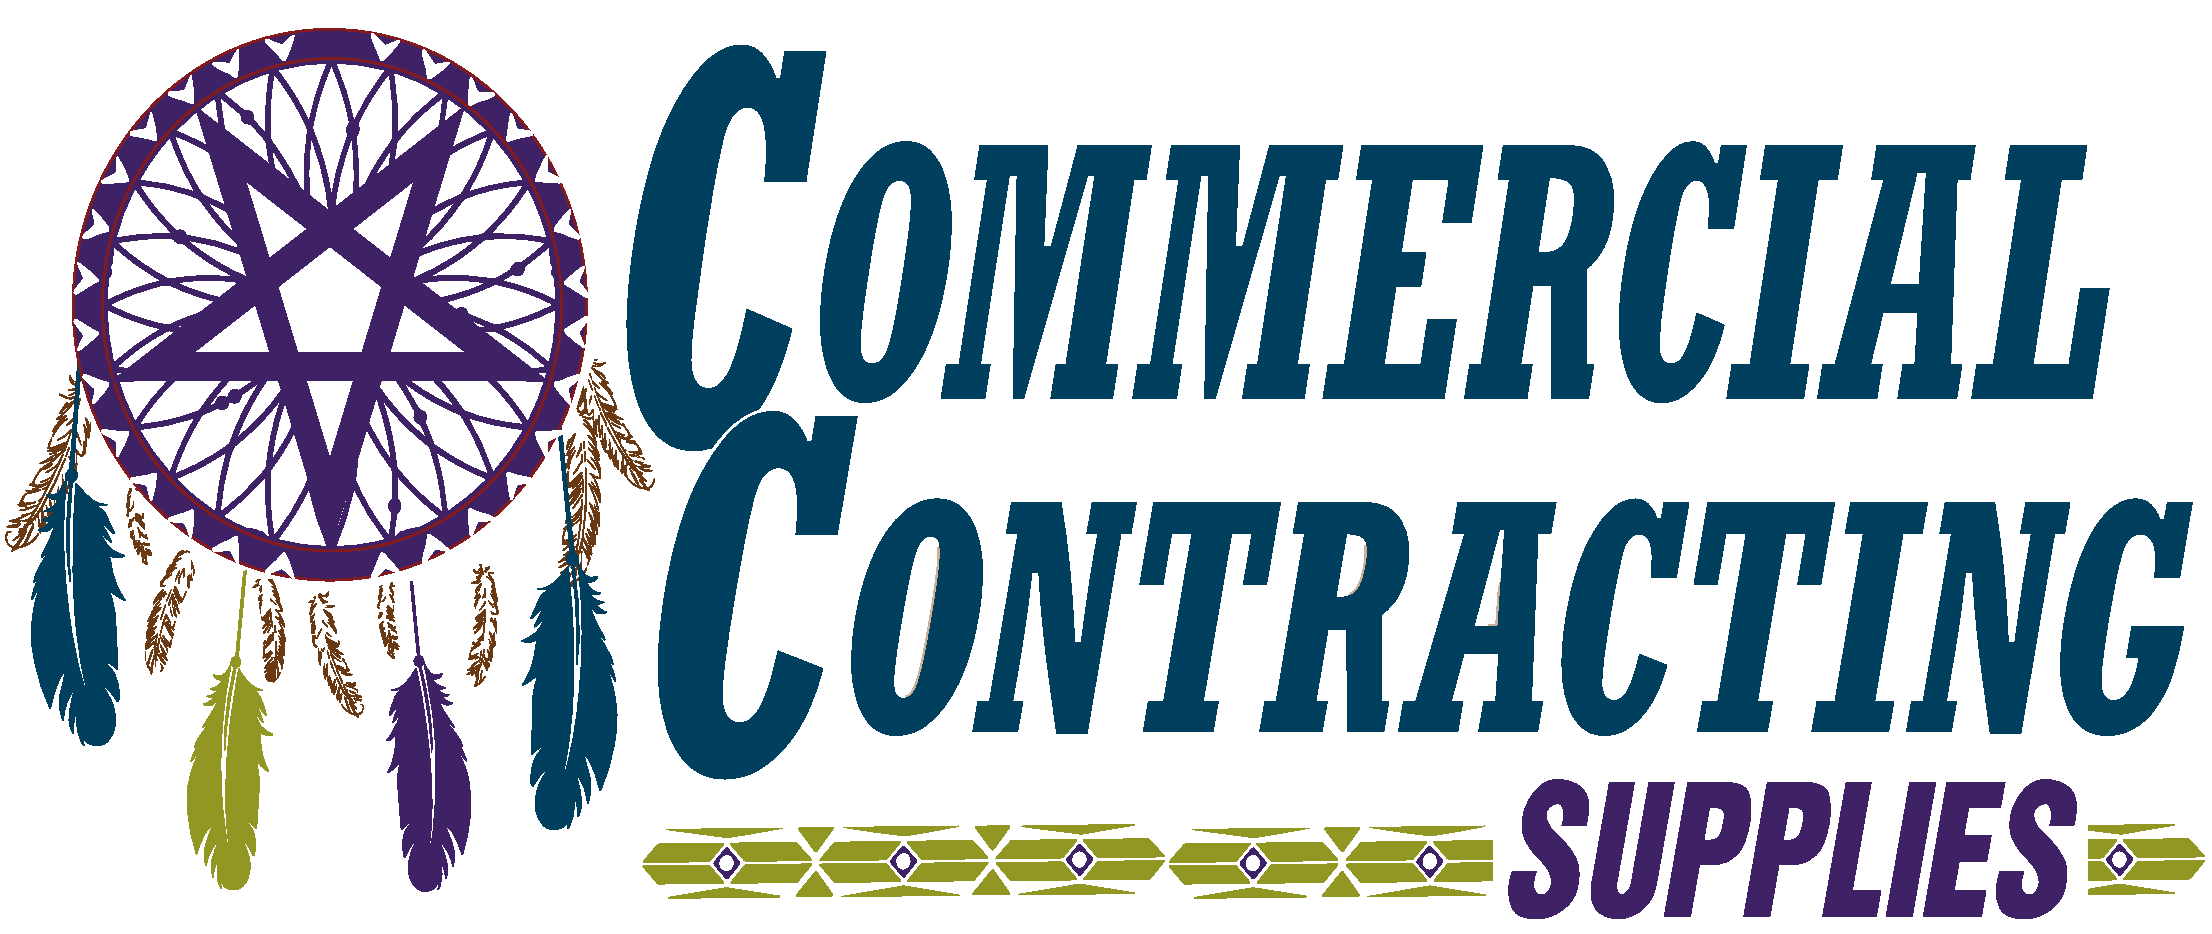 Commerical Contracting Supplies